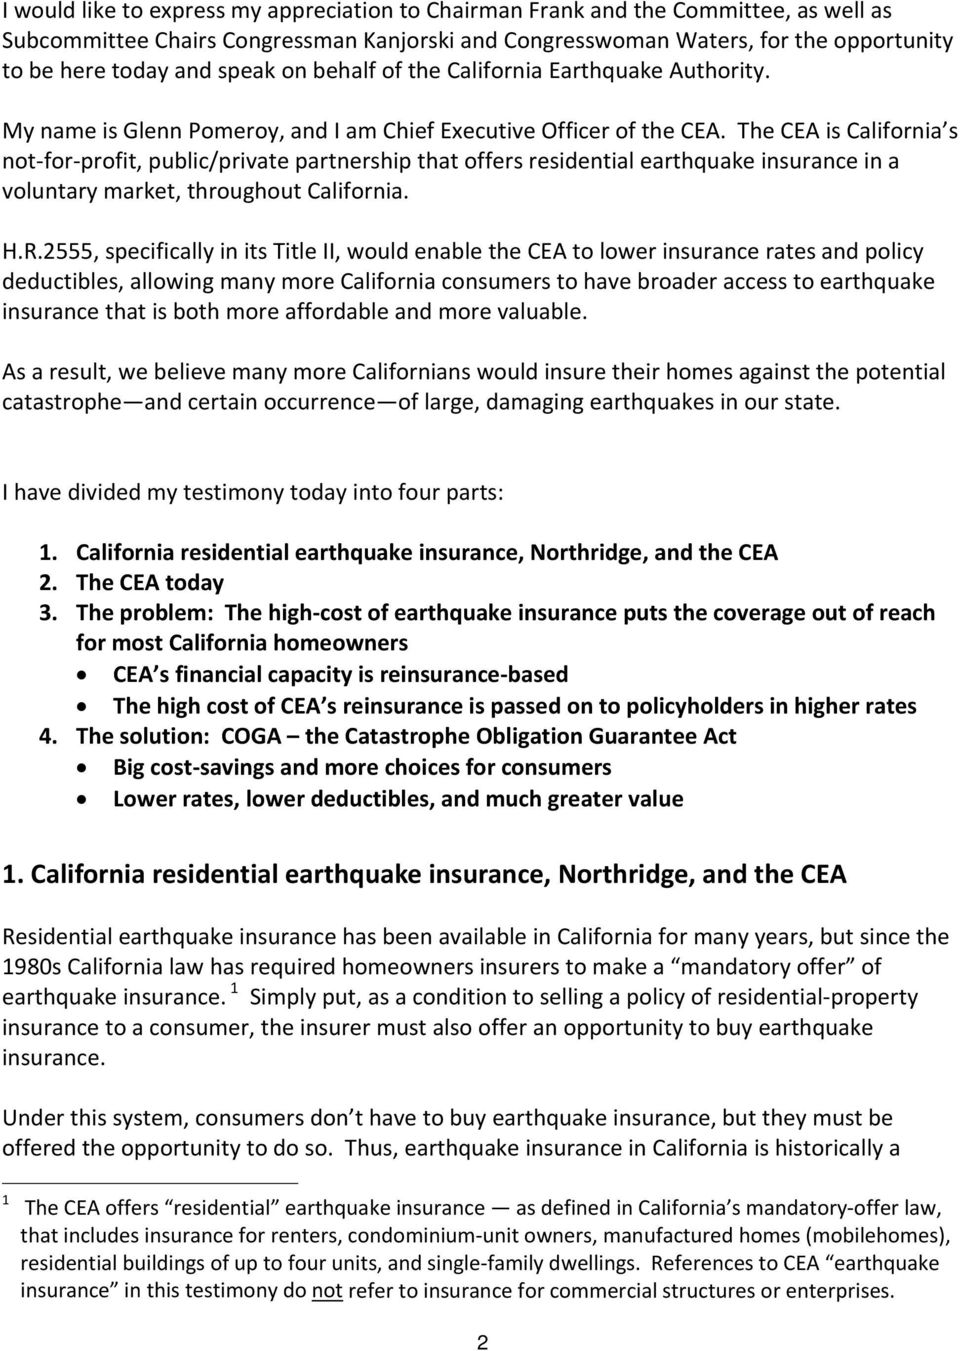 The CEA is California s not for profit, public/private partnership that offers residential earthquake insurance in a voluntary market, throughout California. H.R.